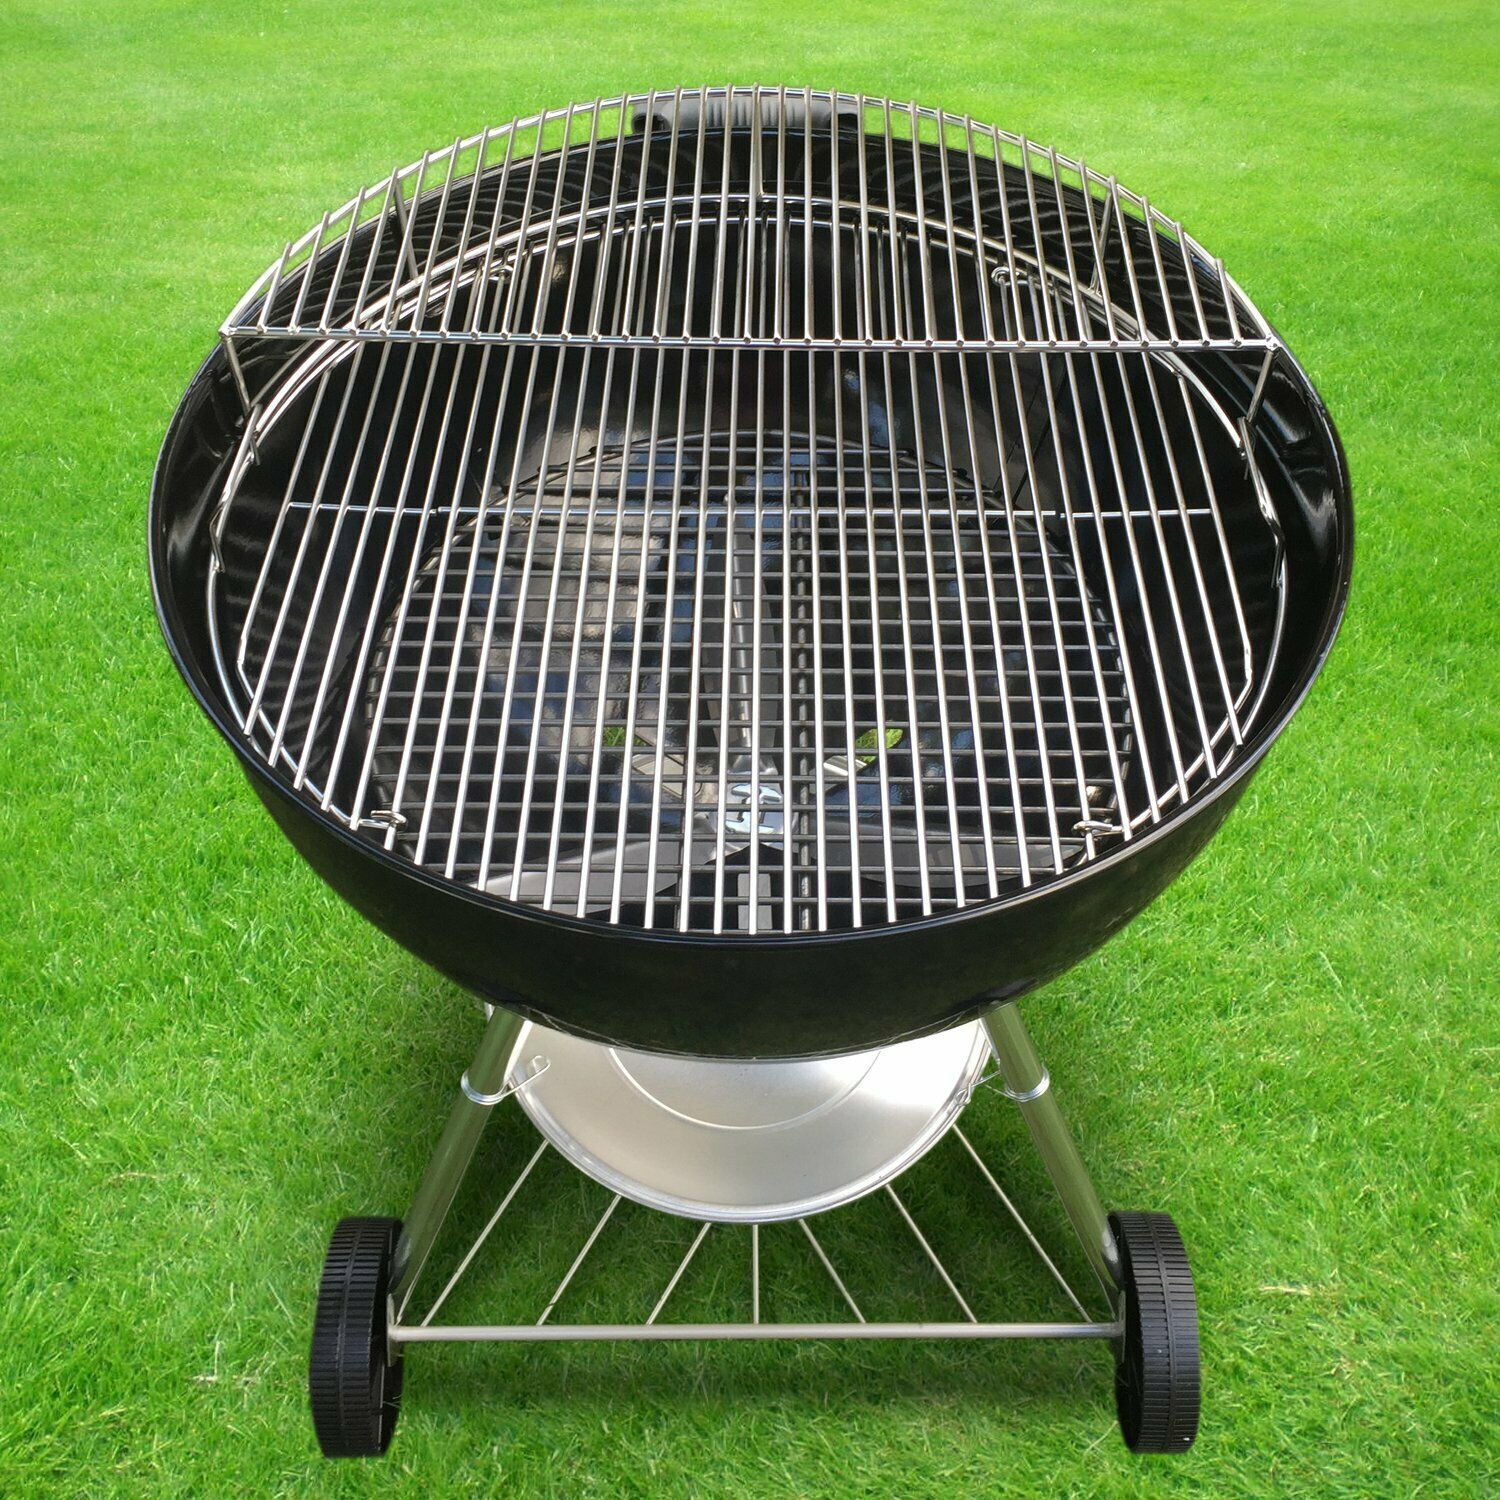 Pin On Original Kettle Premium Charcoal Grill 22 Inch Black